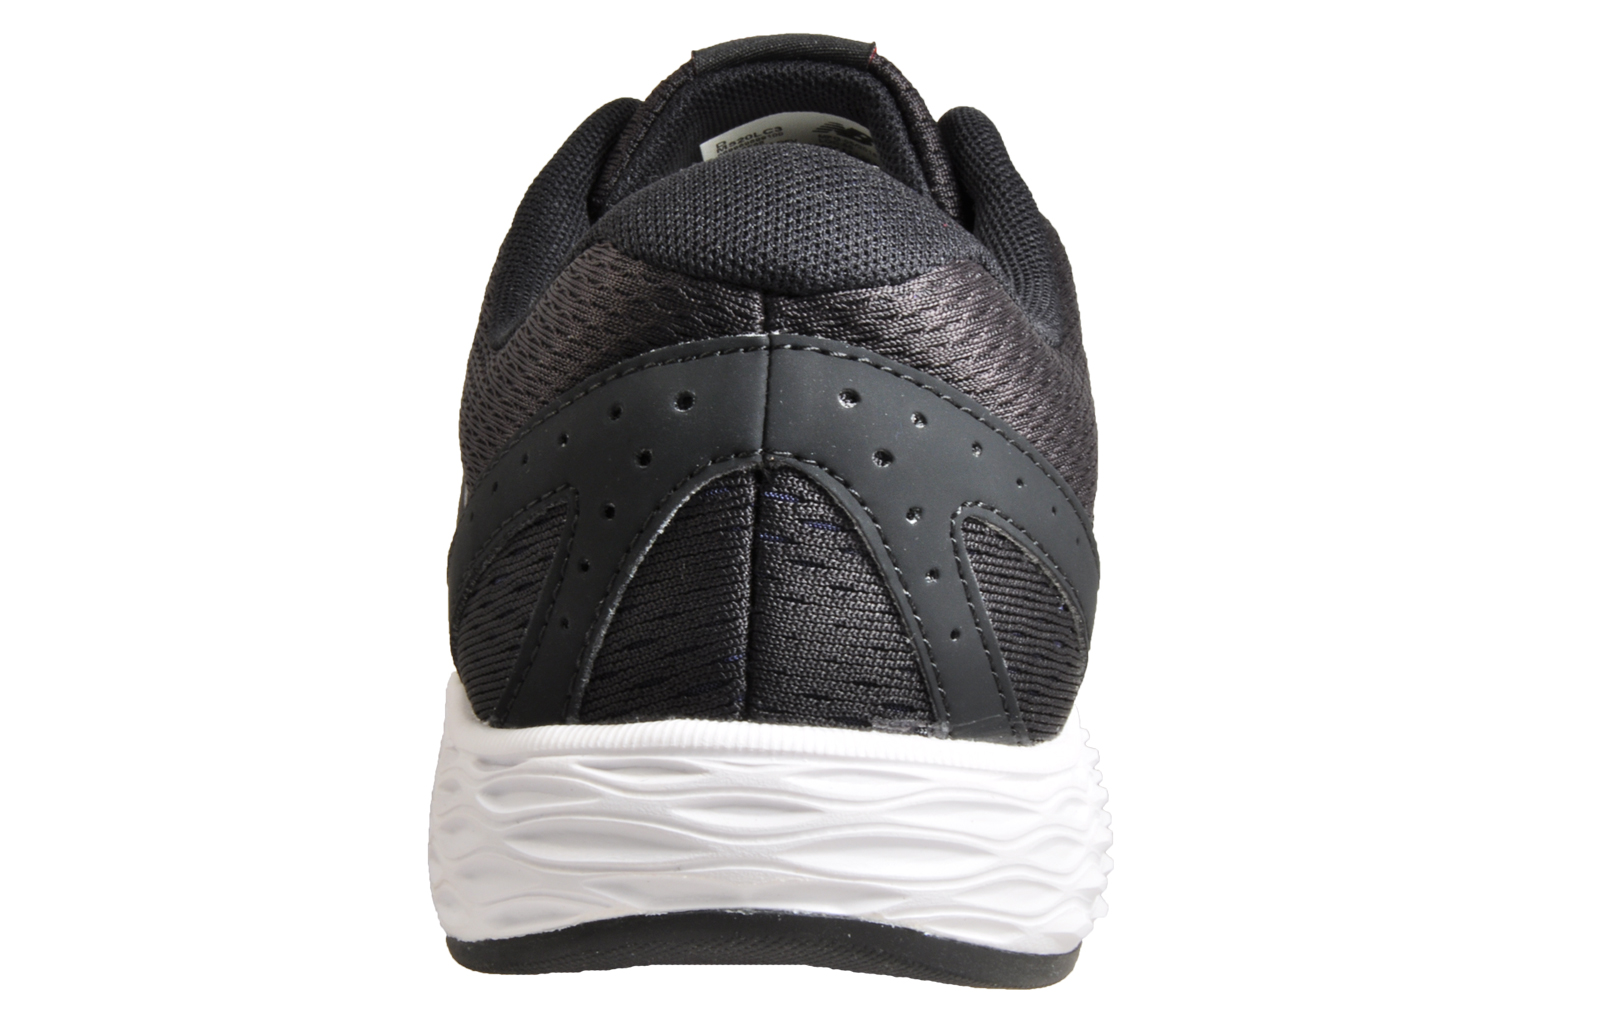 c33d06ba3 New Balance 520 v3 Men s Performance Running Shoes Fitness Gym Trainers  Black